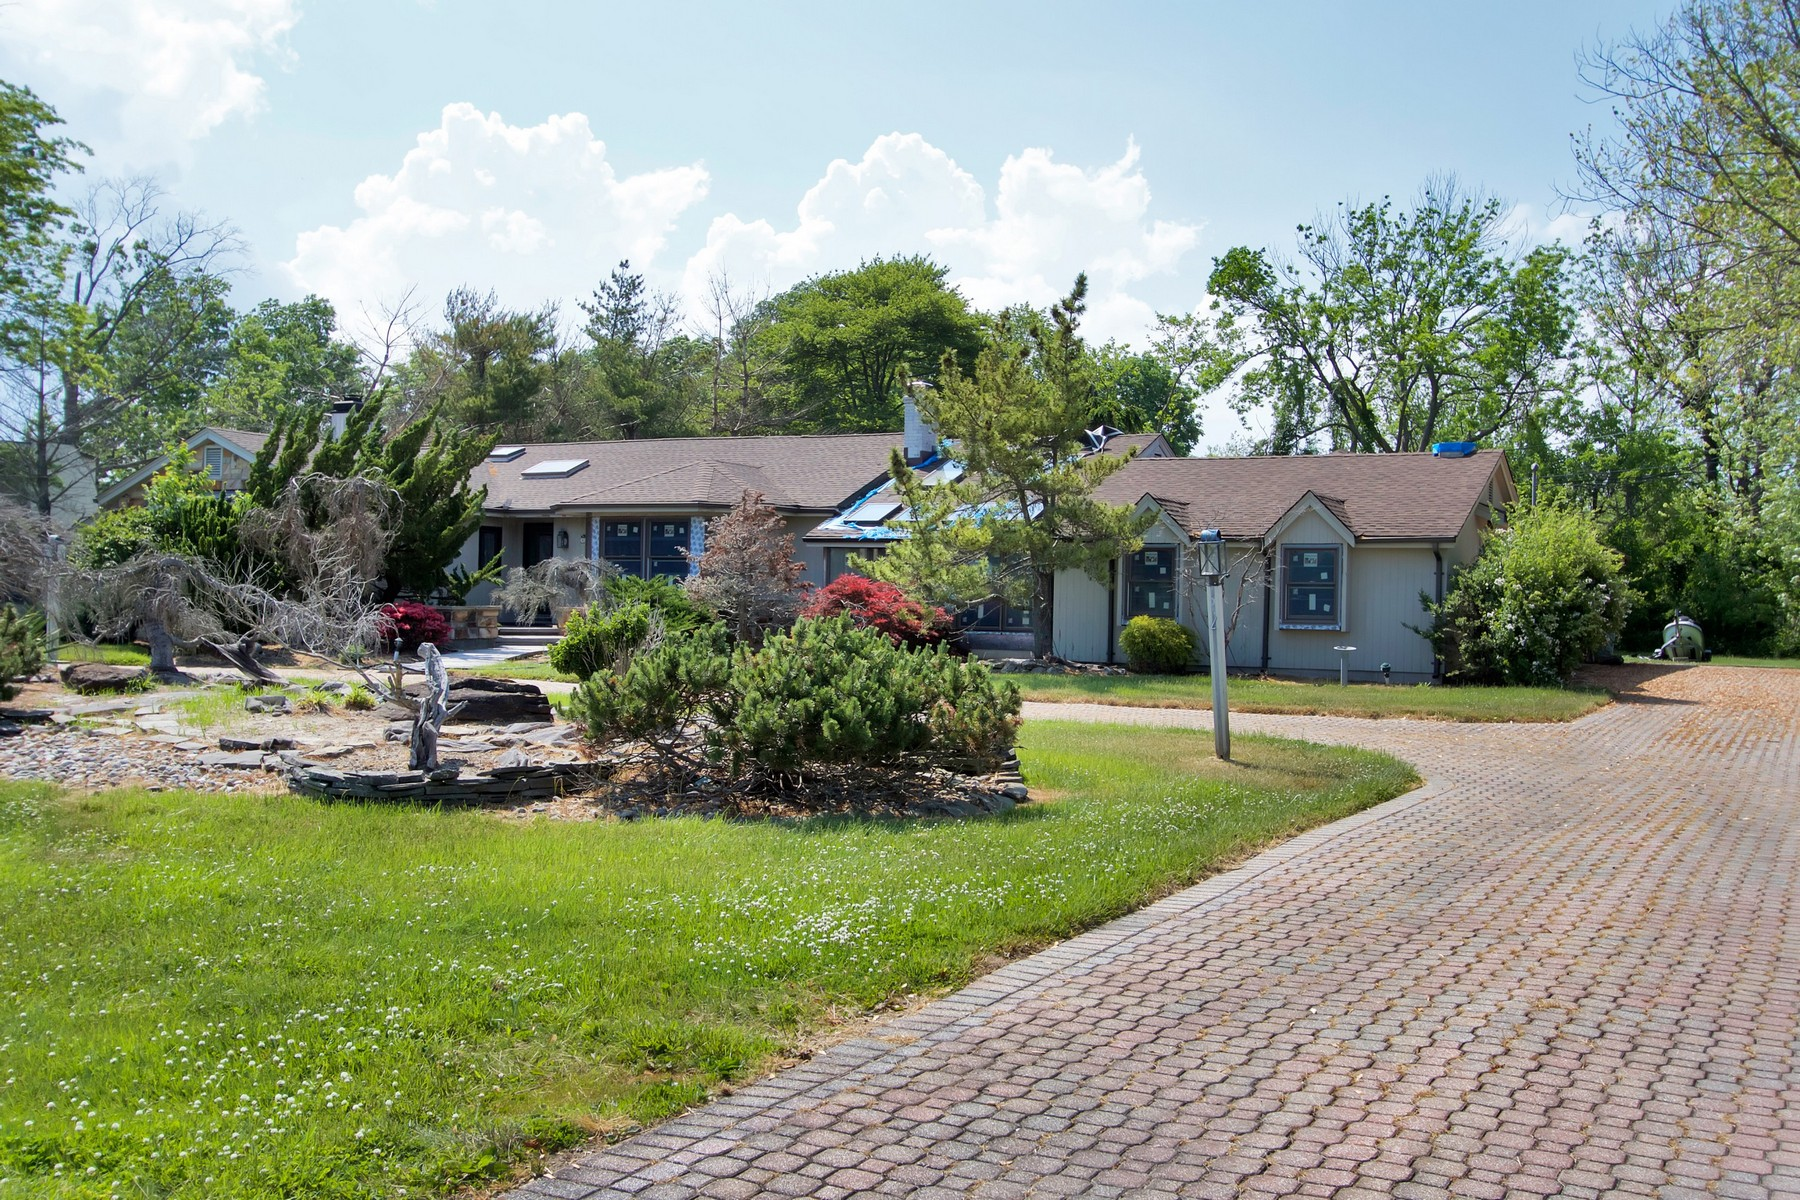 Single Family Home for Sale at Oceanport 27 Shore Rd Oceanport, New Jersey 07757 United States